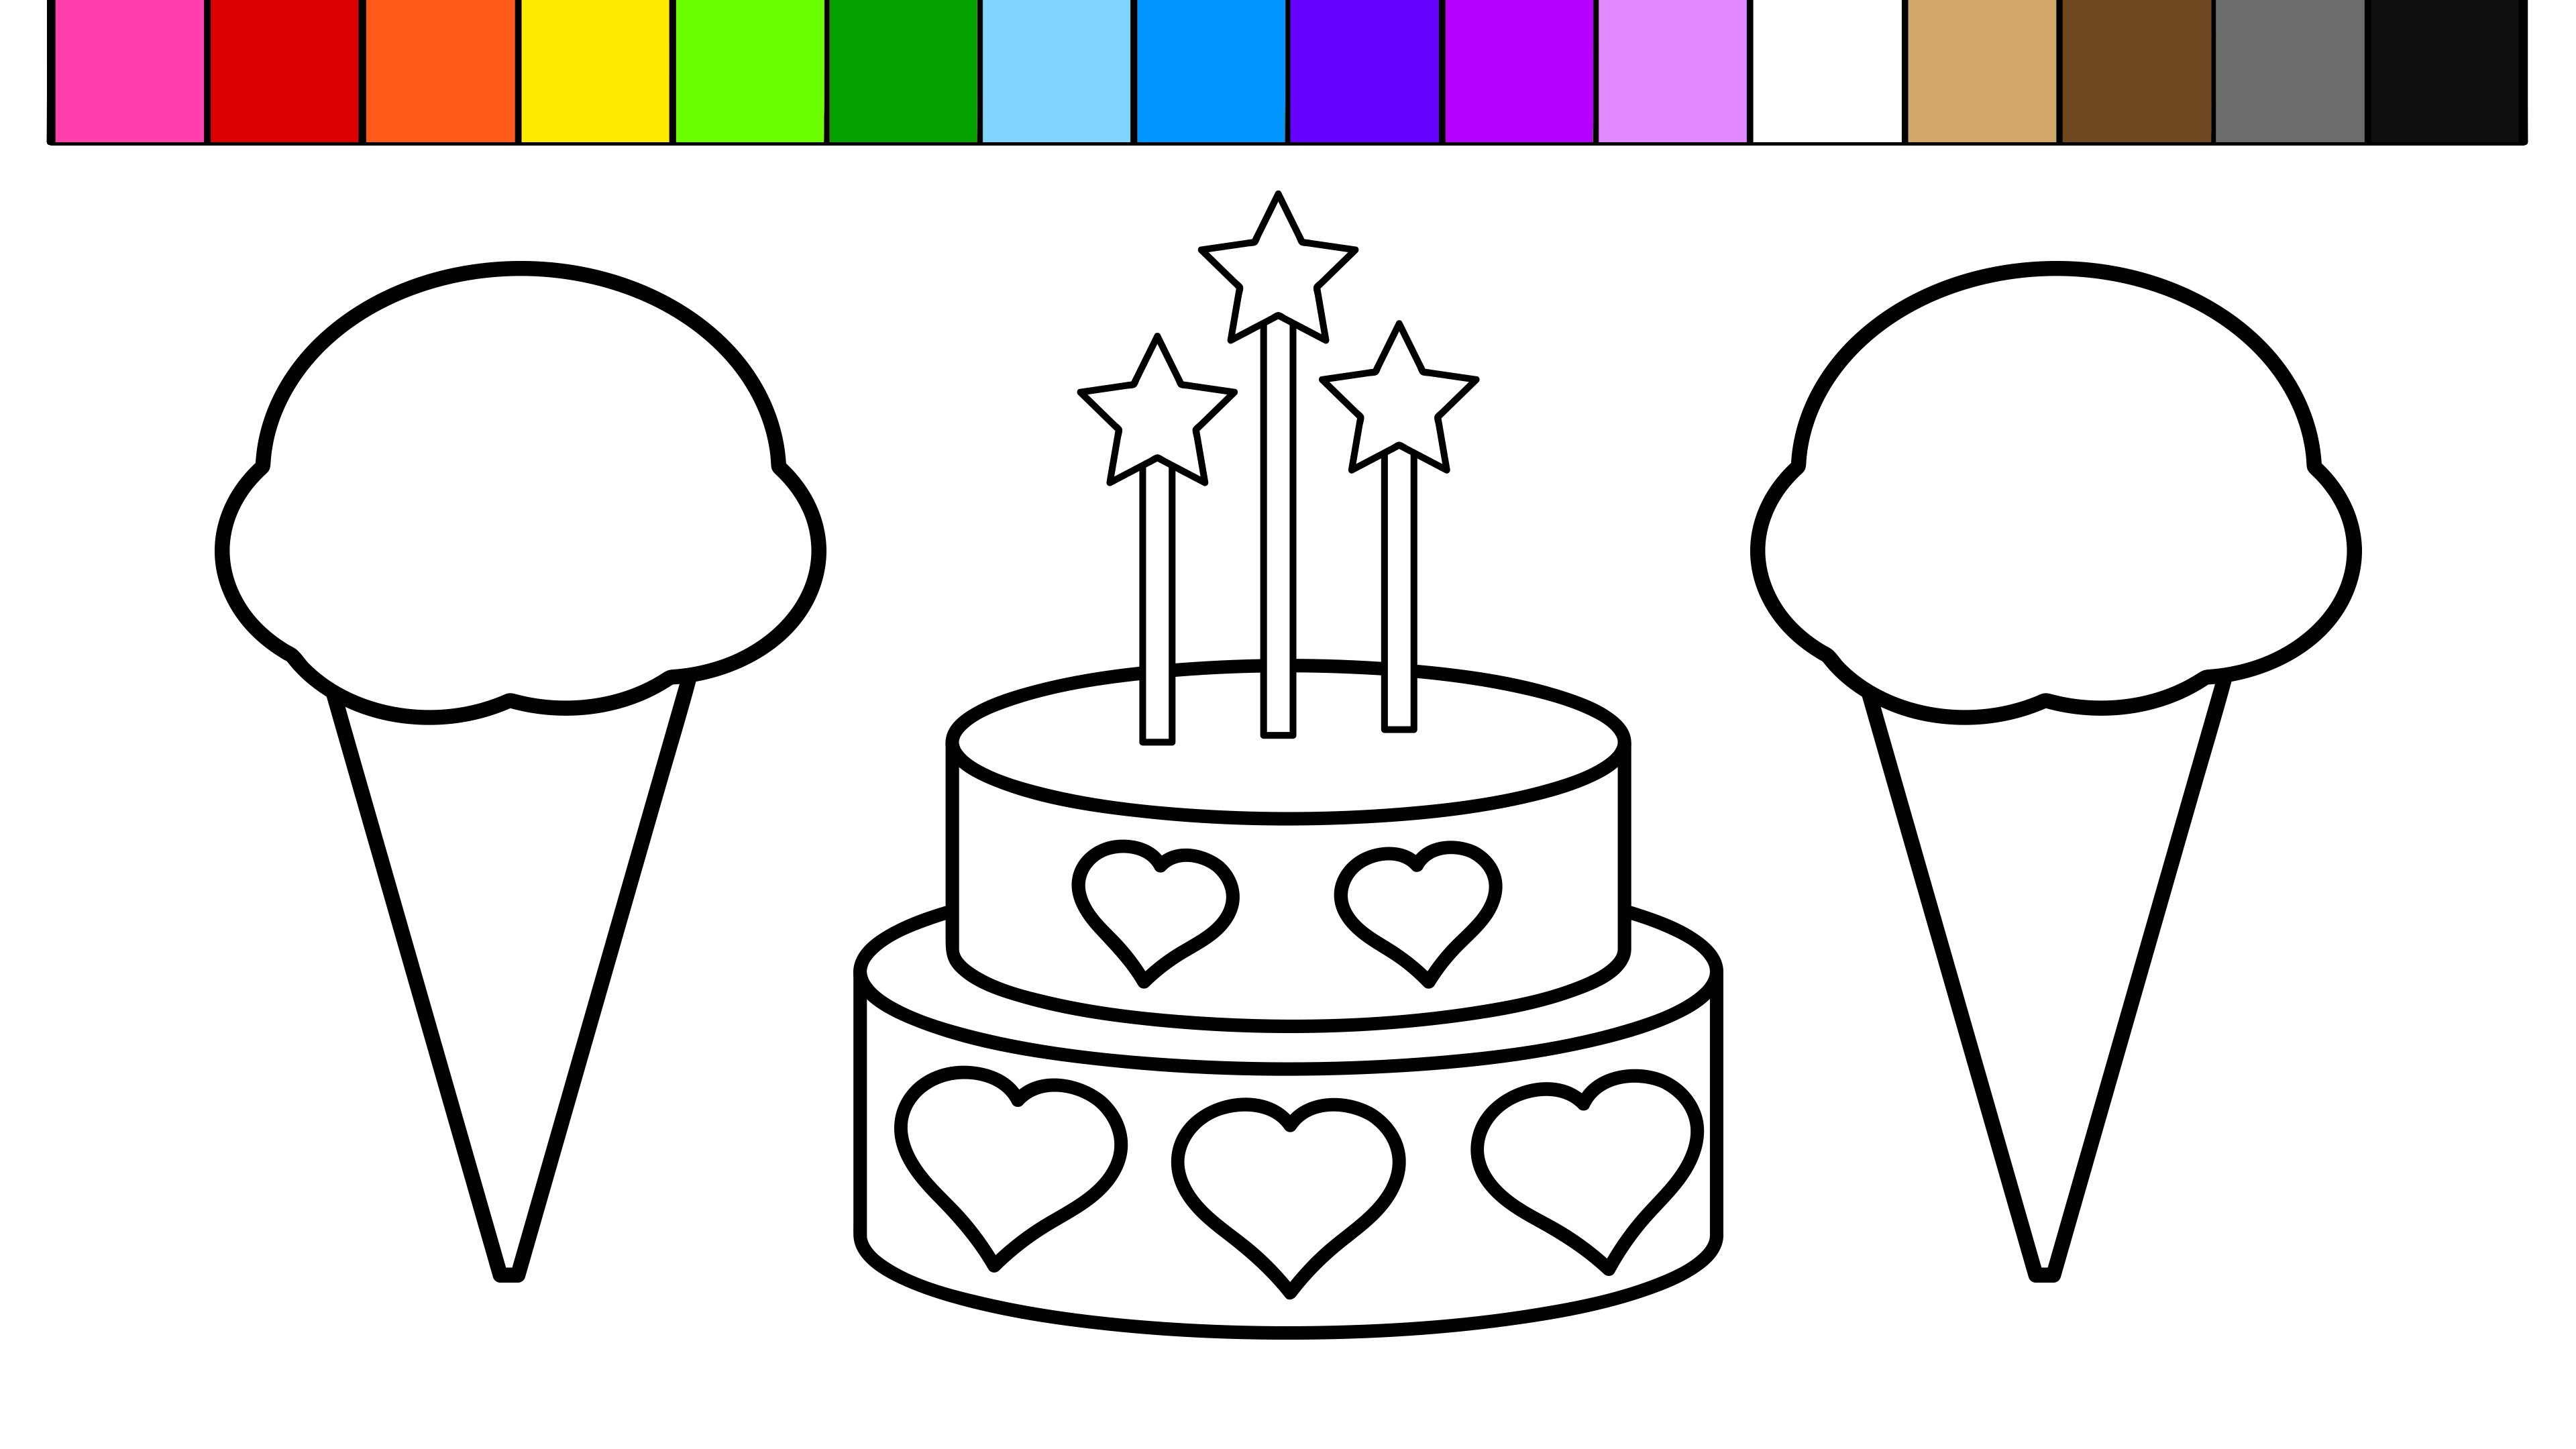 3840x2160 Birthday Candle Coloring Page Fresh Color Ice Cream Heart Birthday